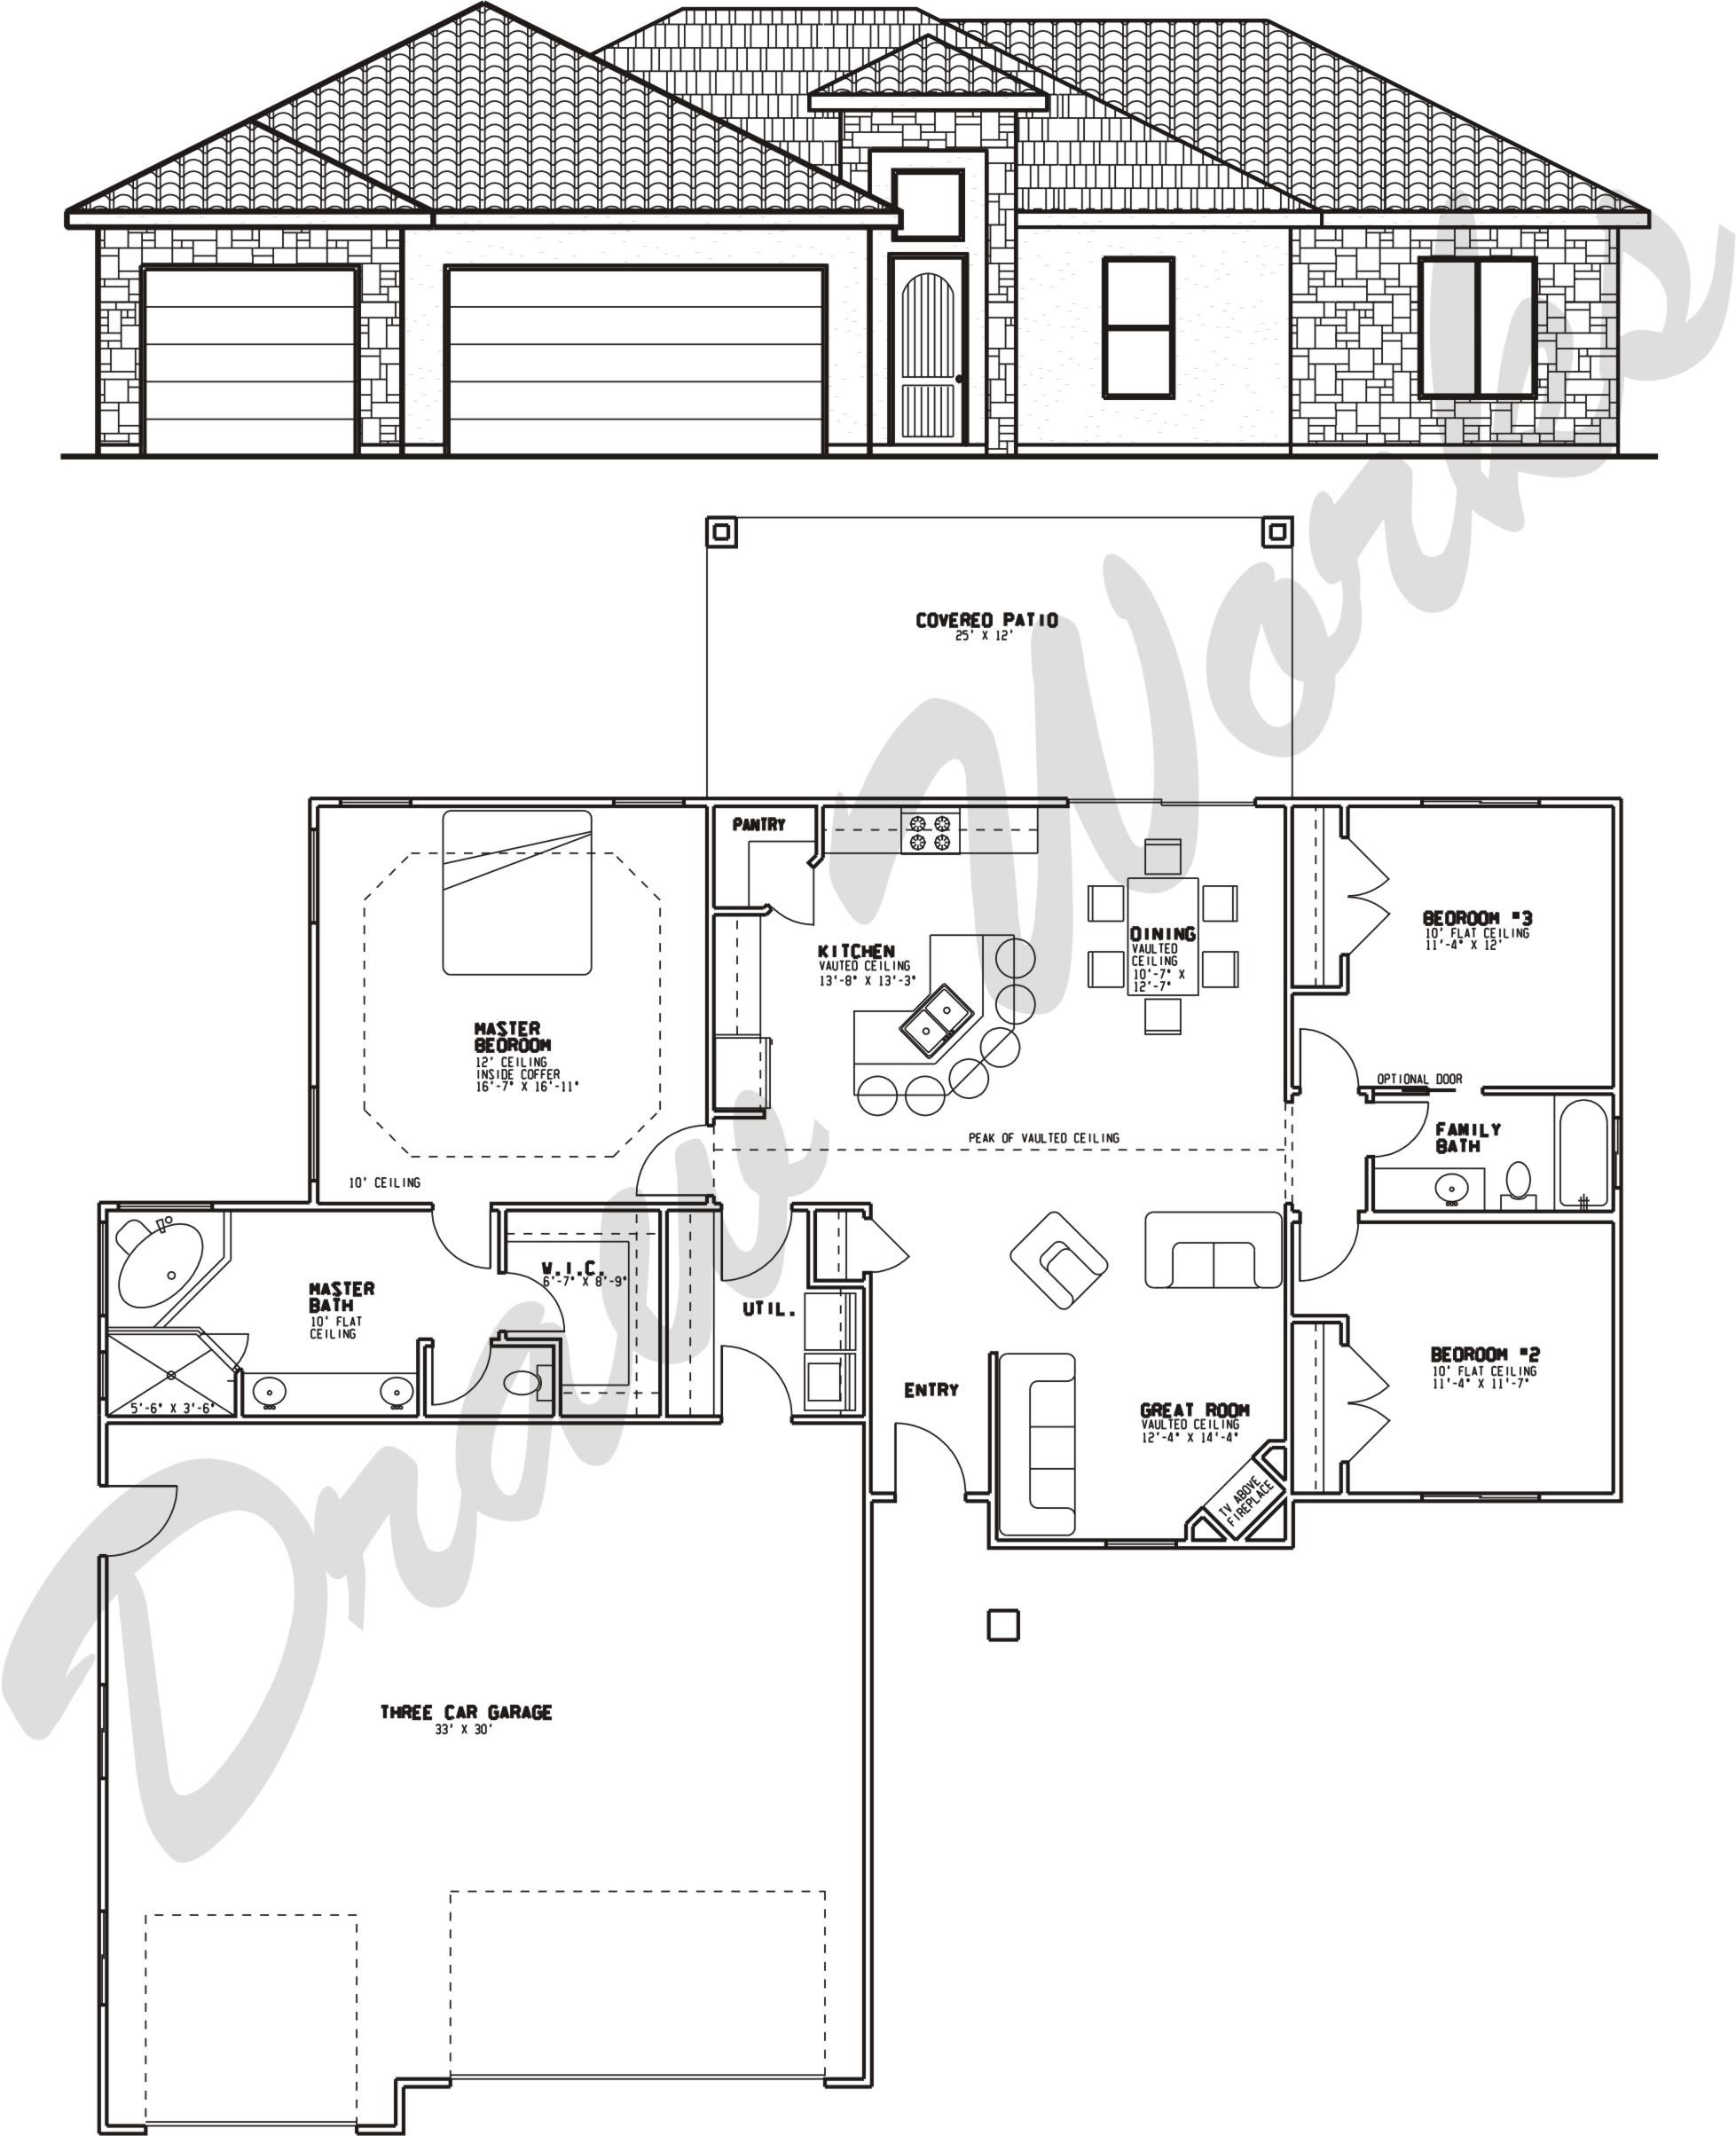 Draw Works Quality Home Design House Plans House Floor Plans How To Plan